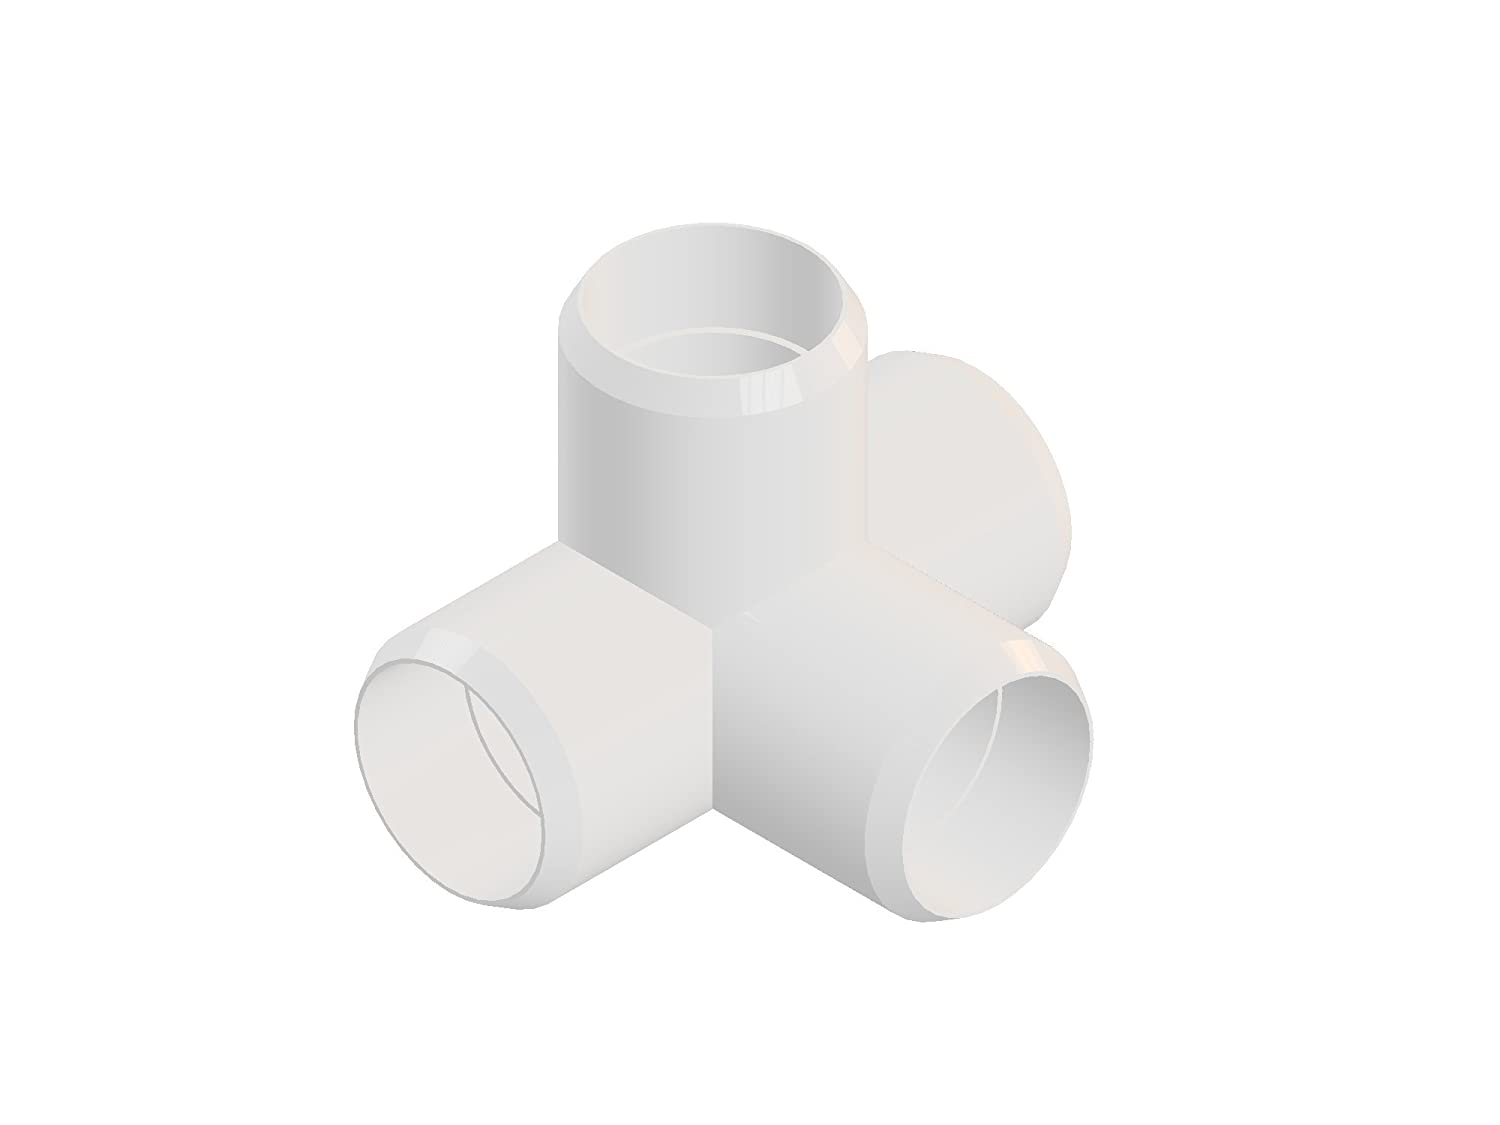 4way 1 inch PVC Elbow Corner Side Outlet Tee Fitting, Furniture Grade, White [Pack of 8] 6132BpC41SML